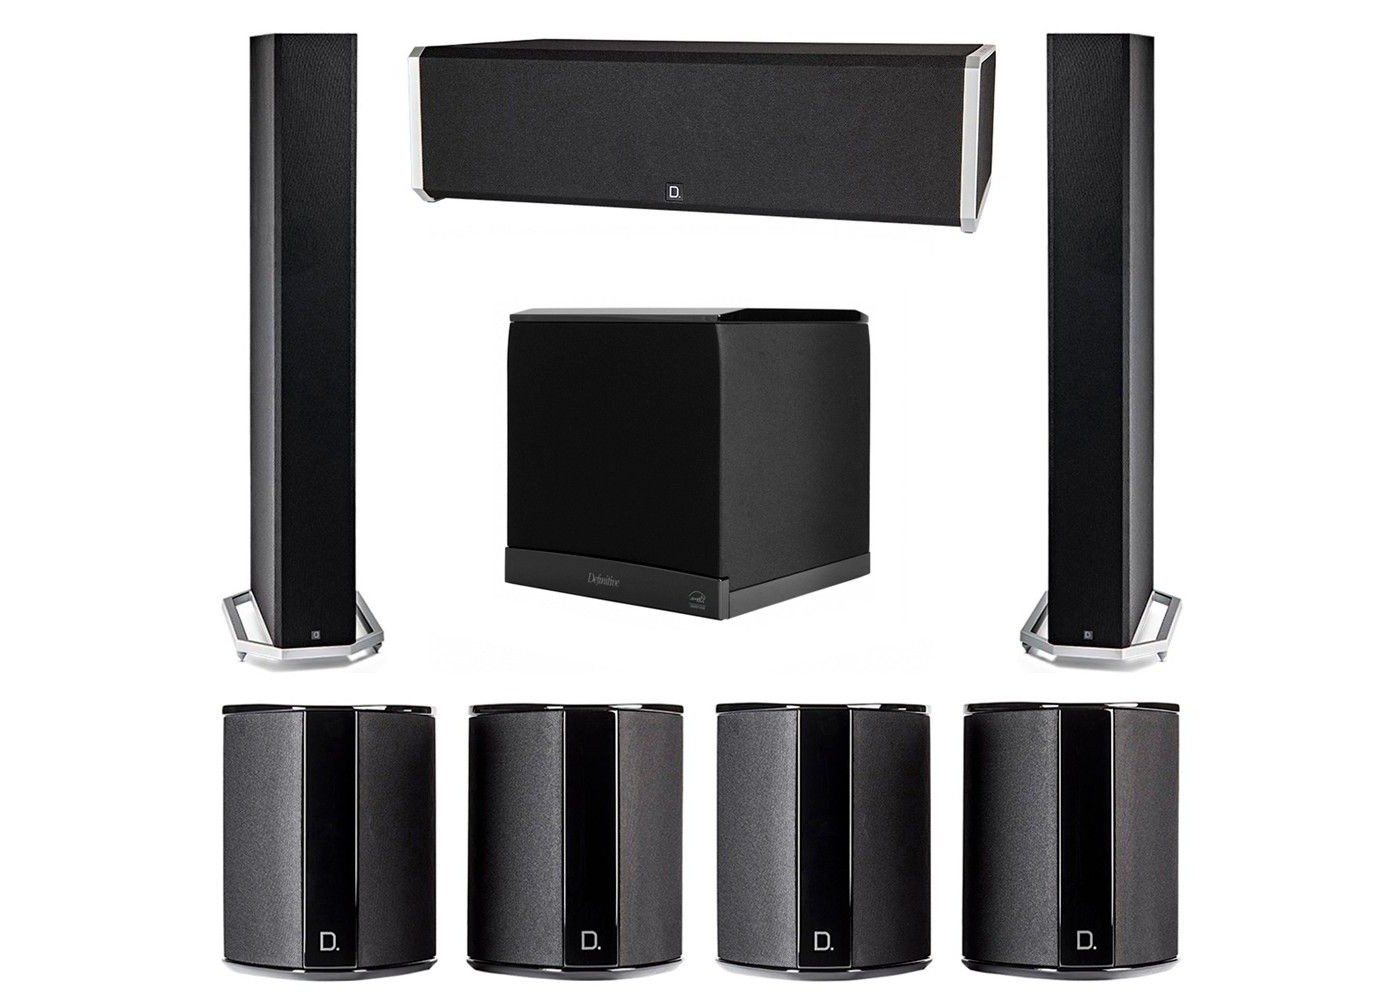 definitive technology 7.1 system with 2 bp9060 tower speakers, 1